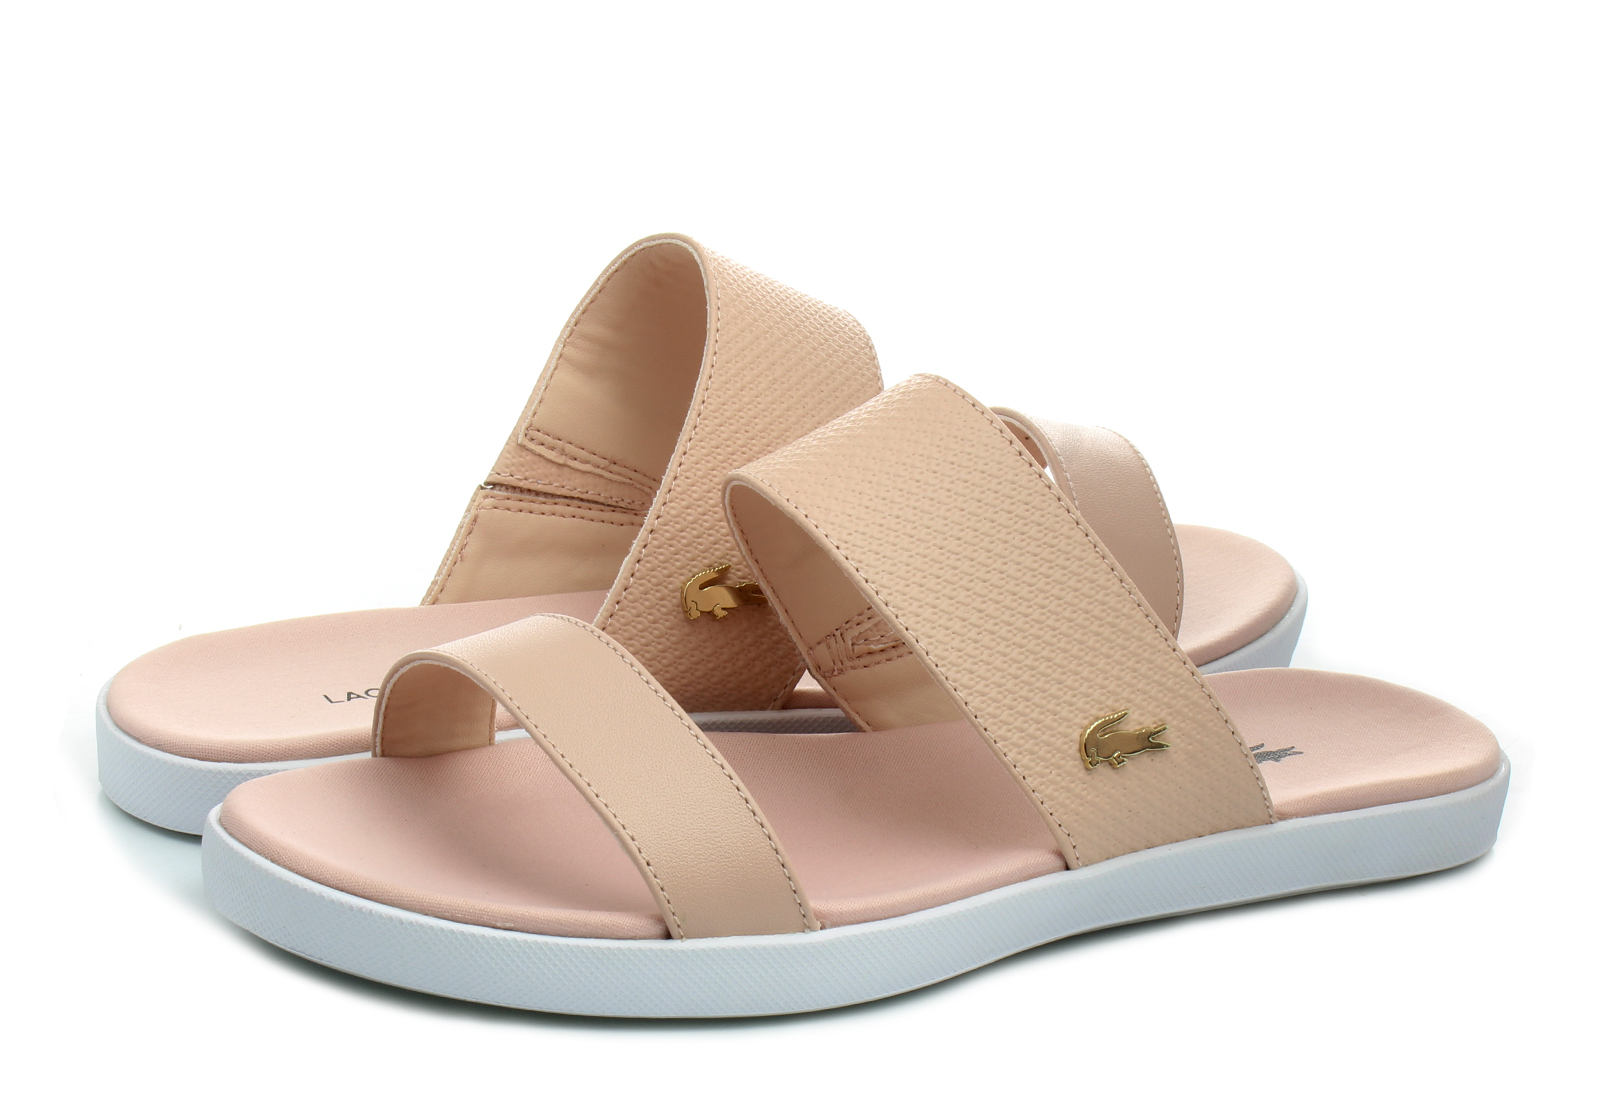 d1ba96a46582f Lacoste Sandals - Natoy - 181caw0045-nl7 - Online shop for sneakers ...